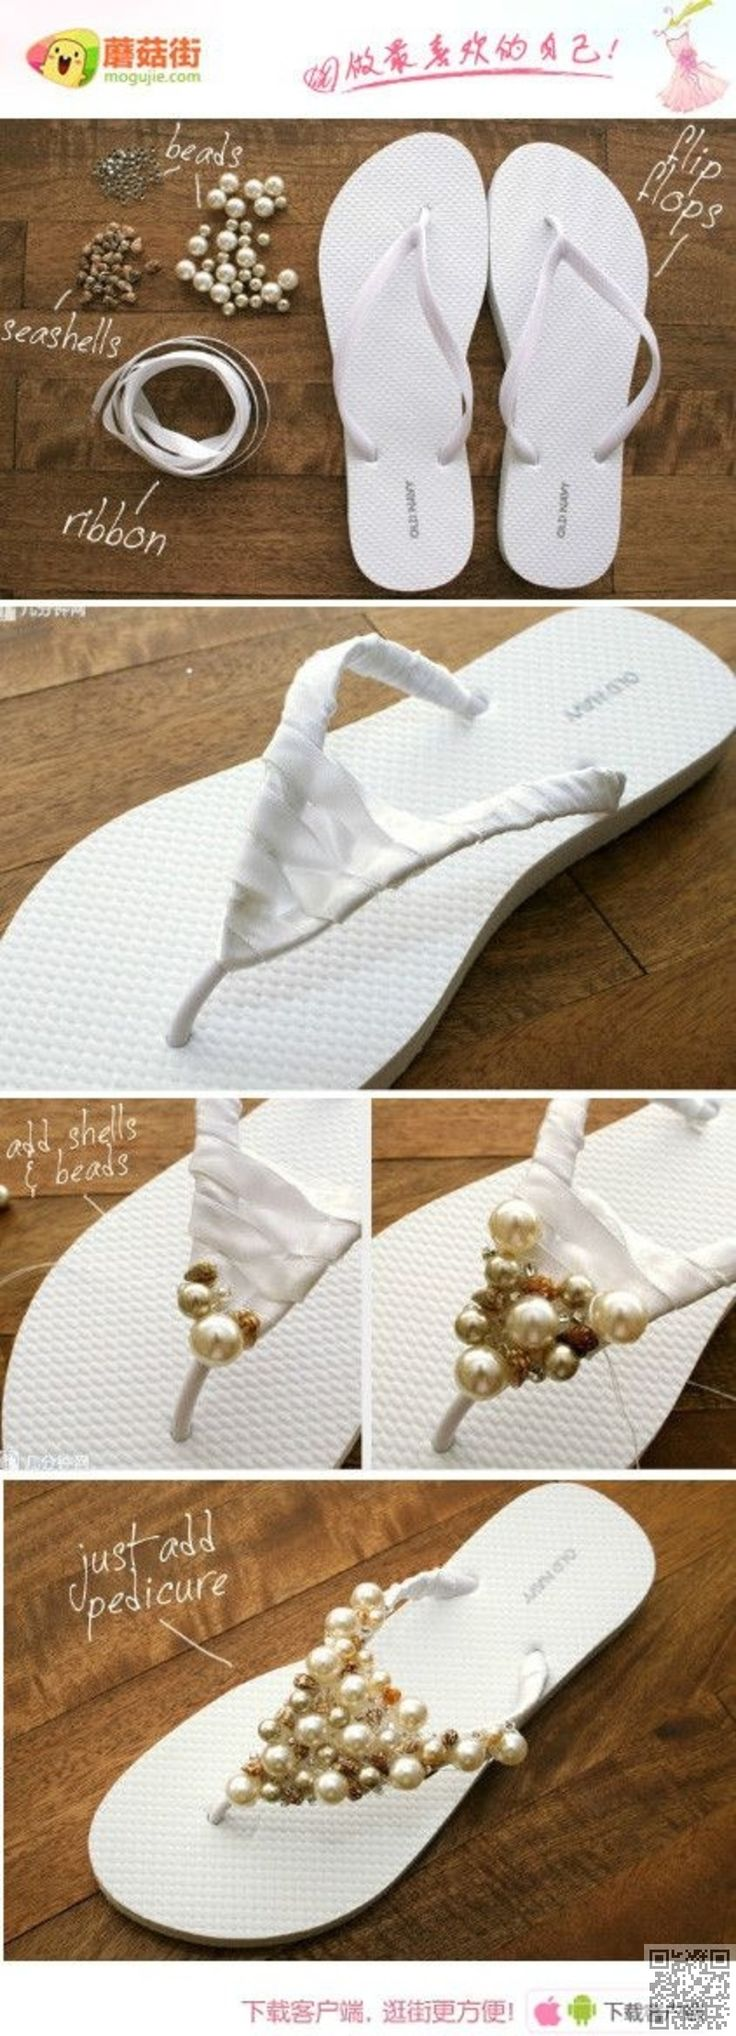 2. #Bling Flip Flops - 31 Shoe #Makeover Projects for the Best #Dressed Feet in…